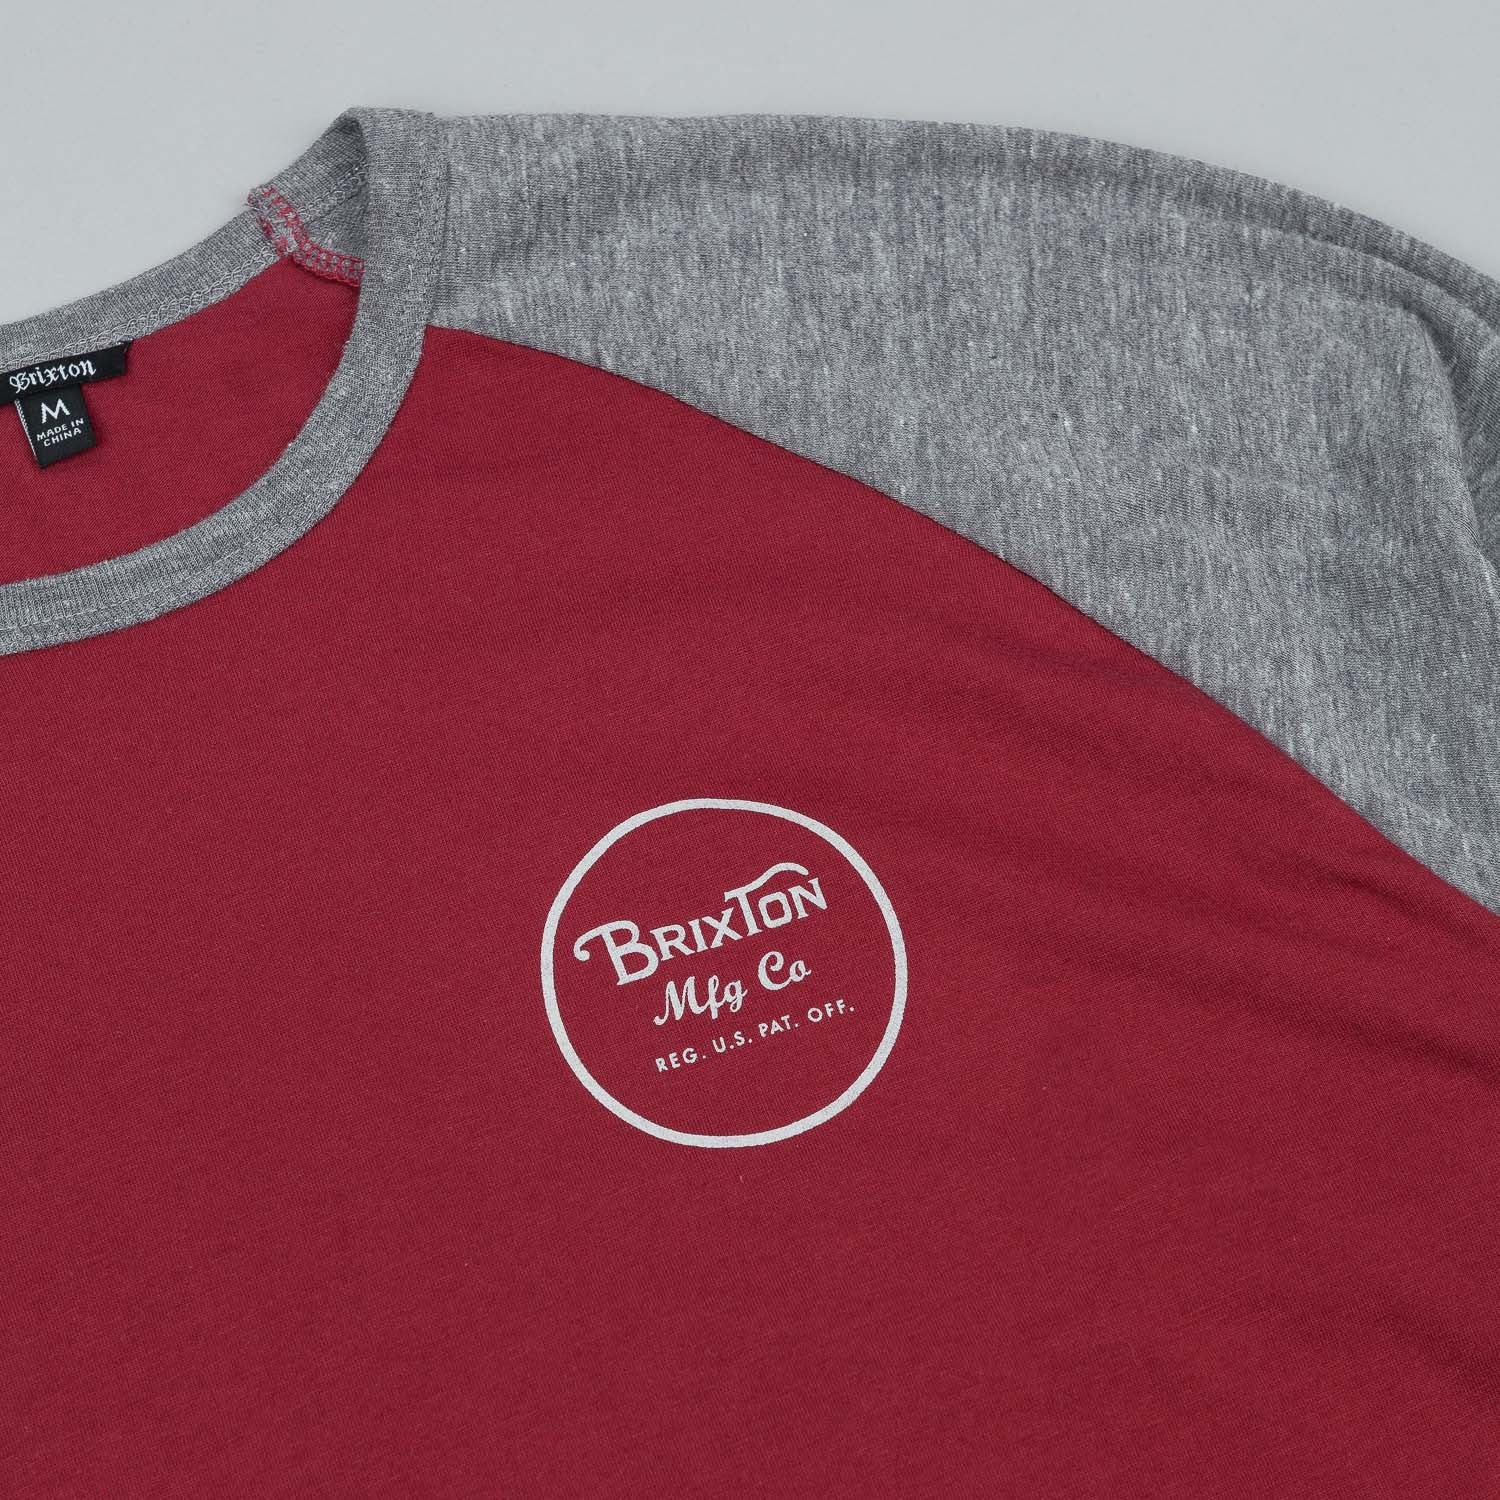 Brixton Wheeler 3/4 Sleeve Raglan T-Shirt - Burgundy / Heather Grey